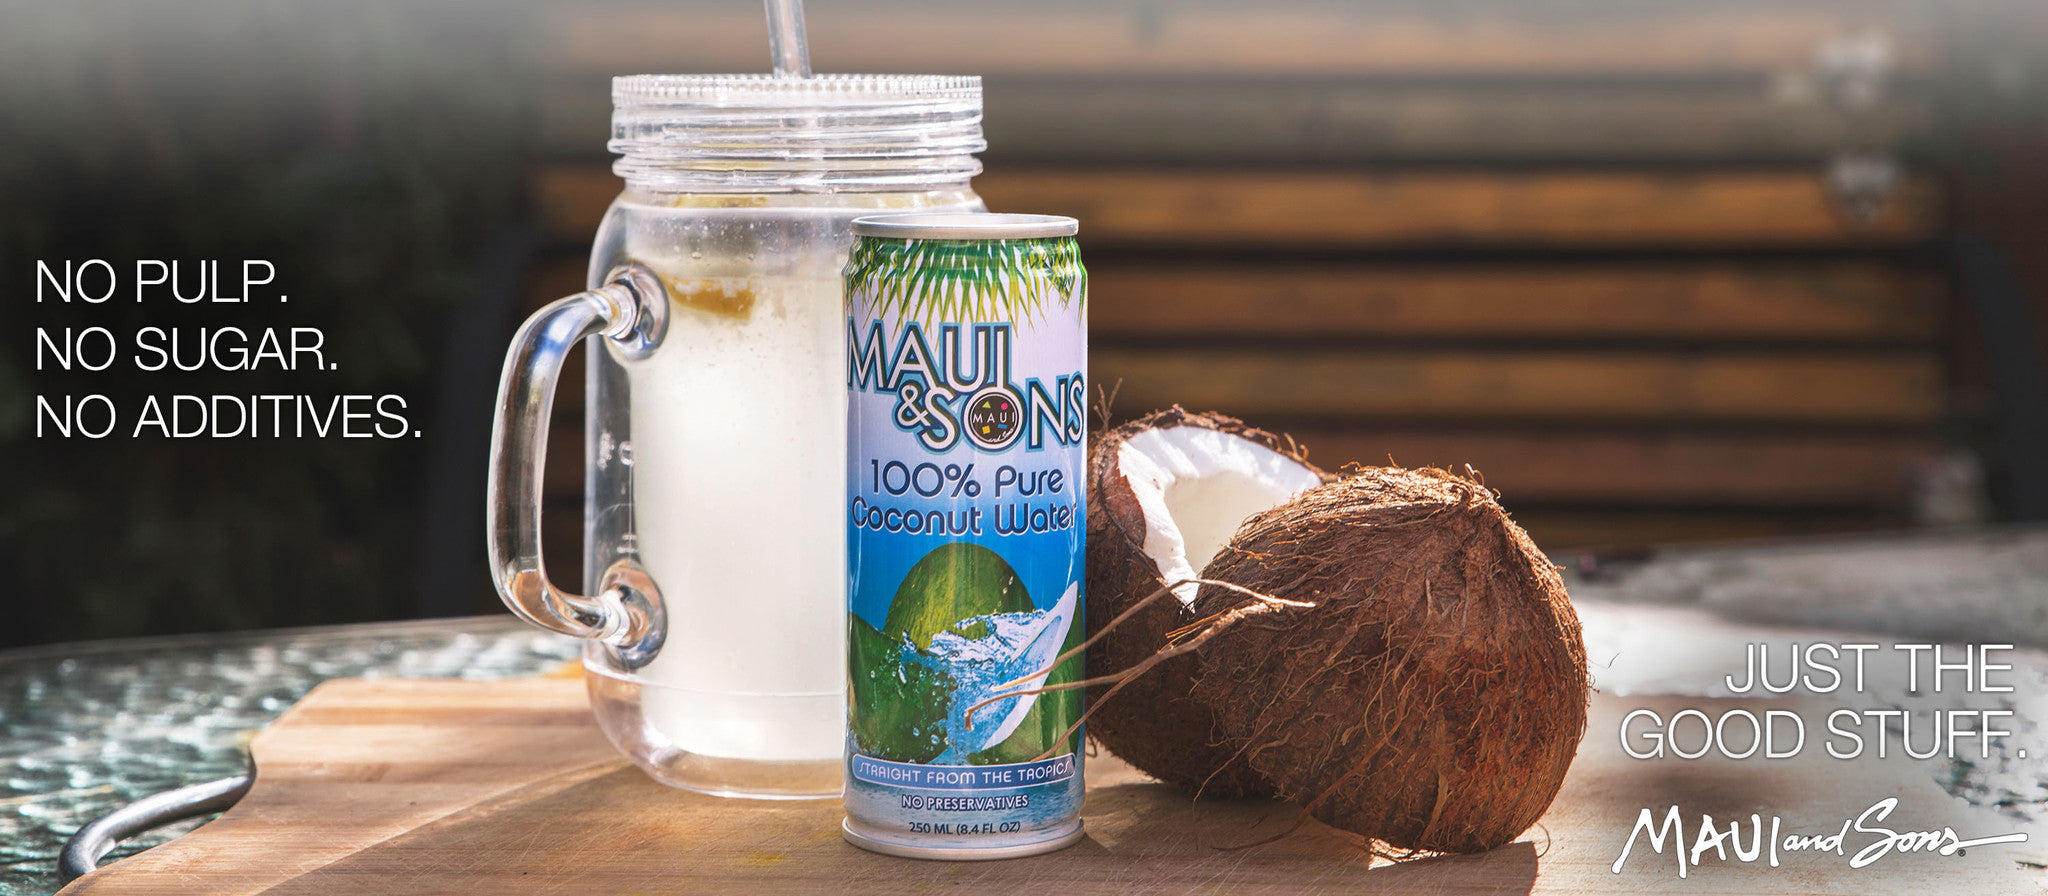 Maui and Sons Coconut Water